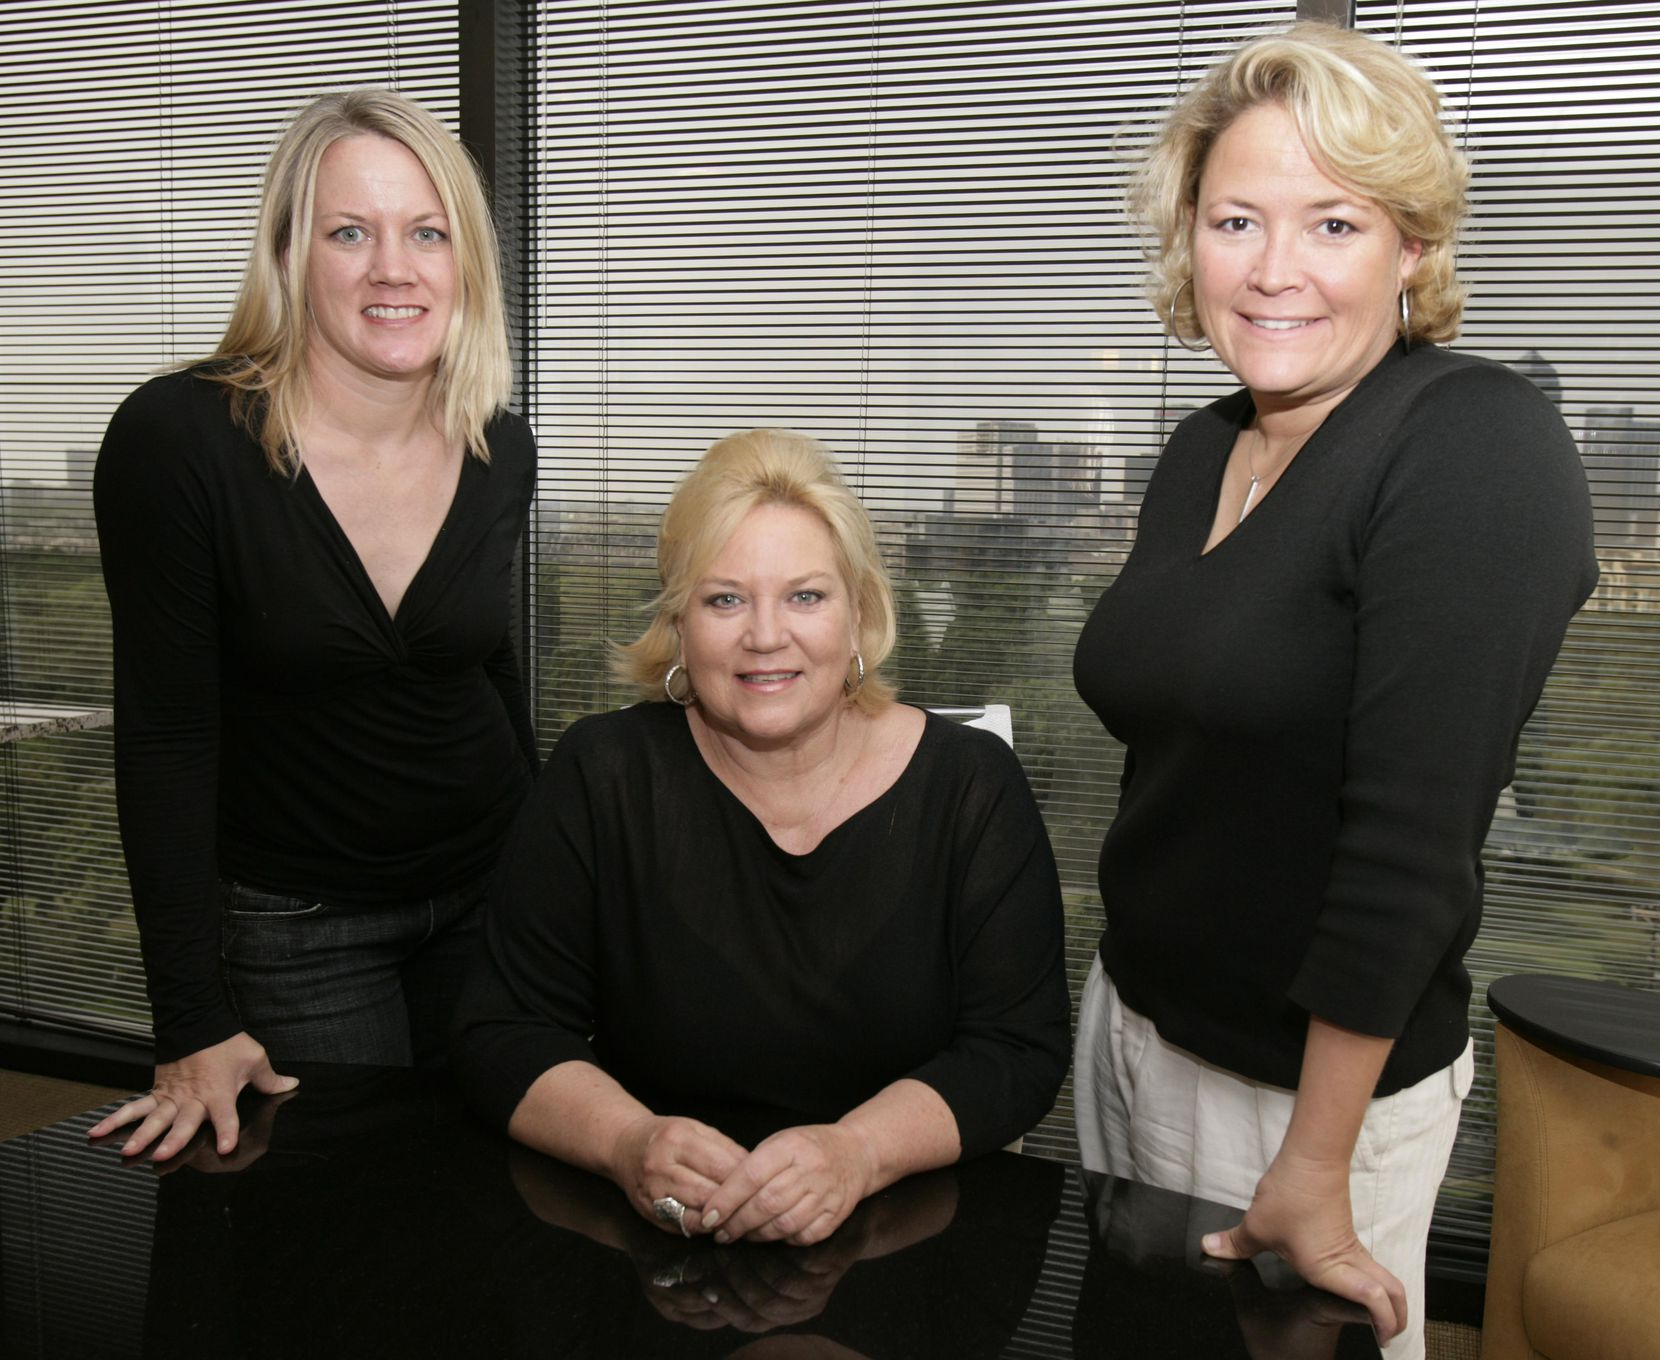 Left to right: Angela Reed Shellene, Carol Reed and Laura Reed worked together at The Reeds Public Relations Corp. in Dallas.